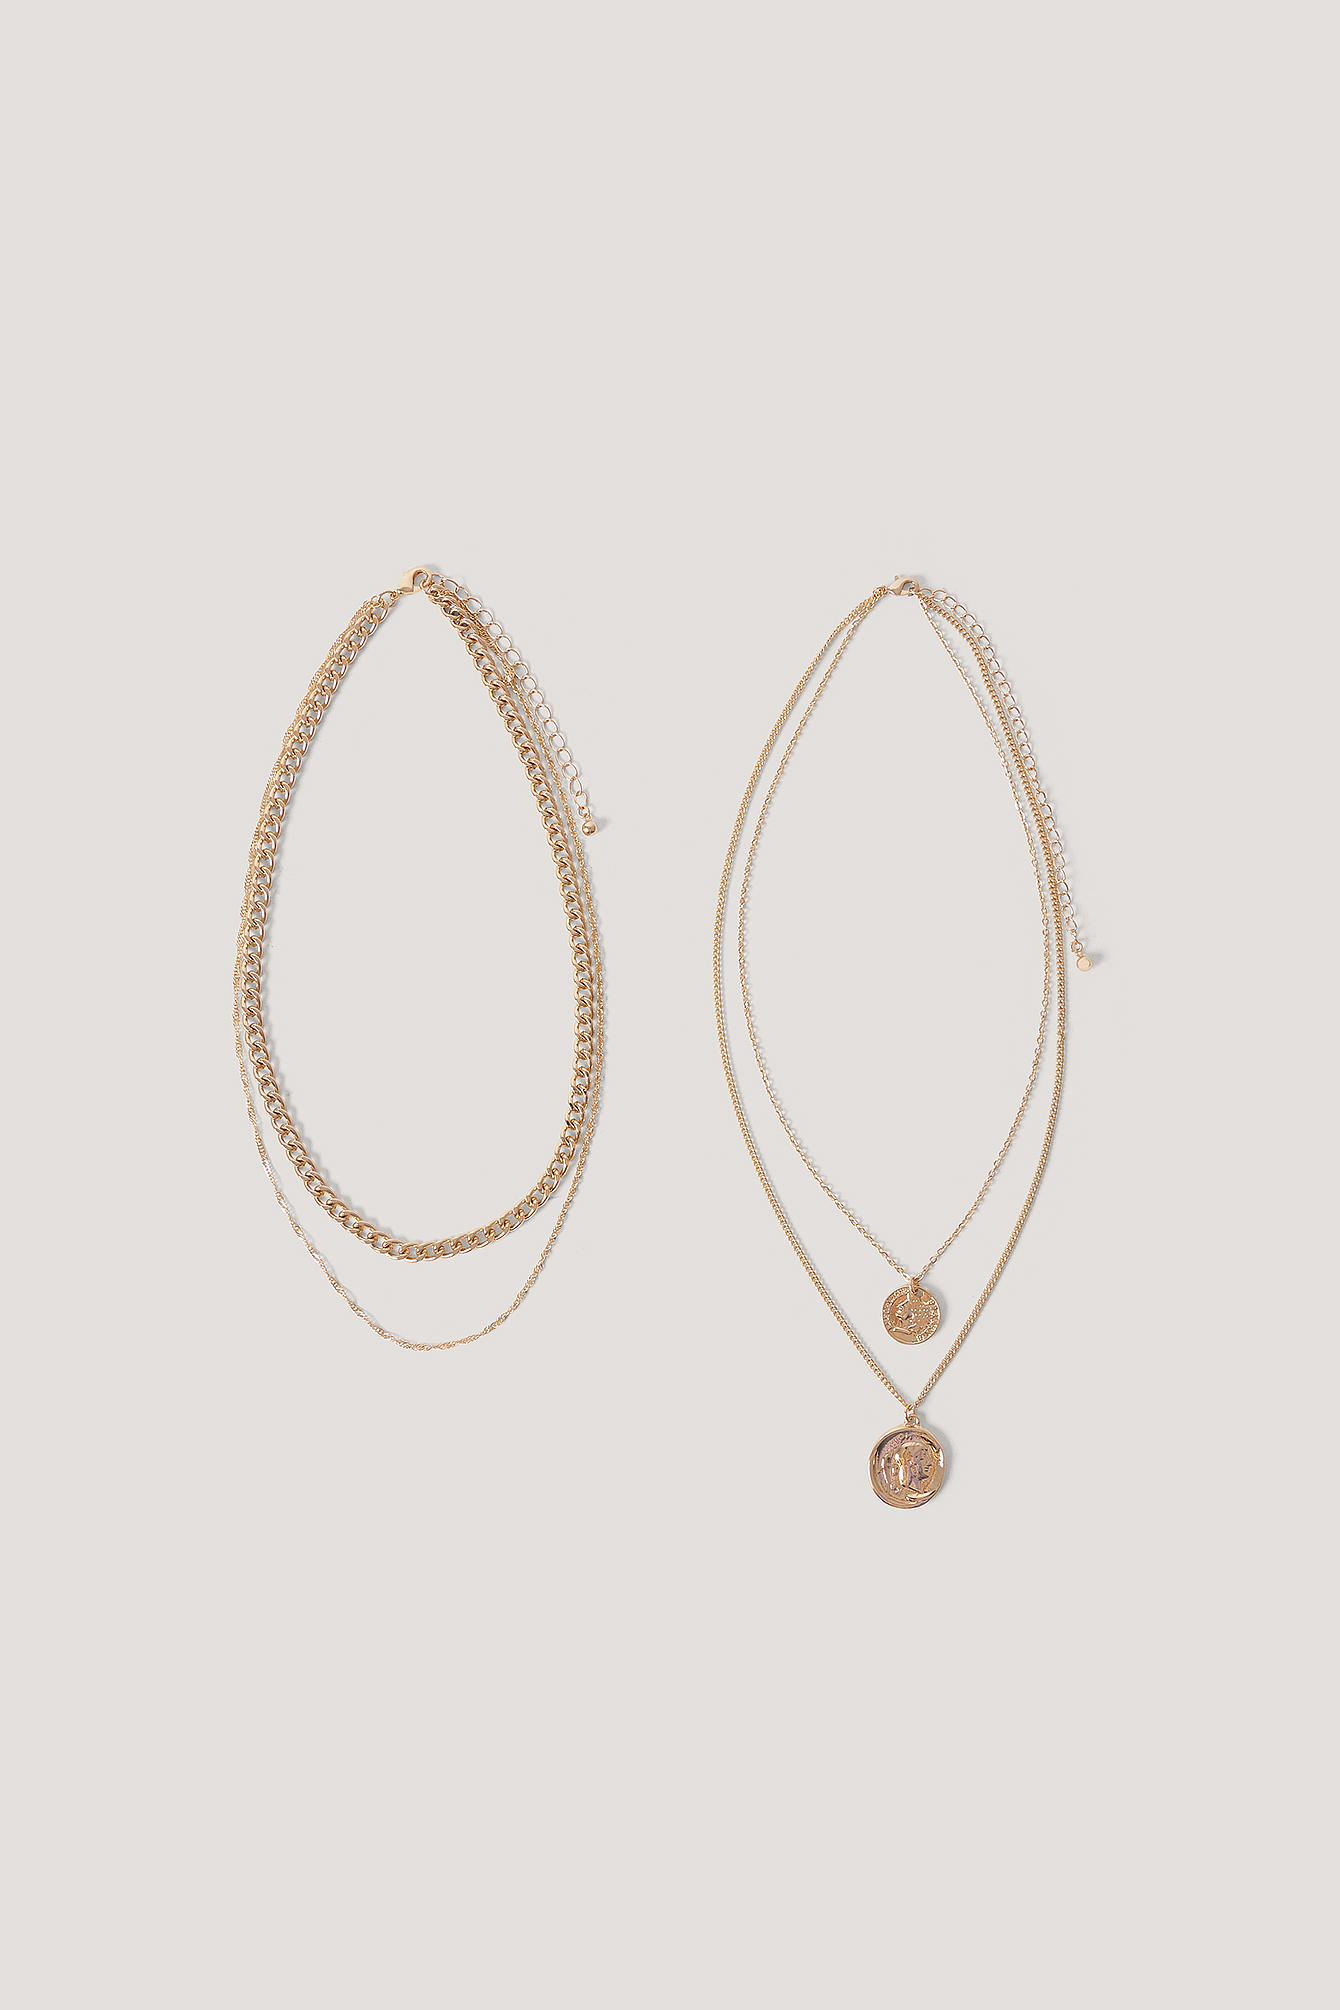 Gold Layered Coin And Chain Necklaces